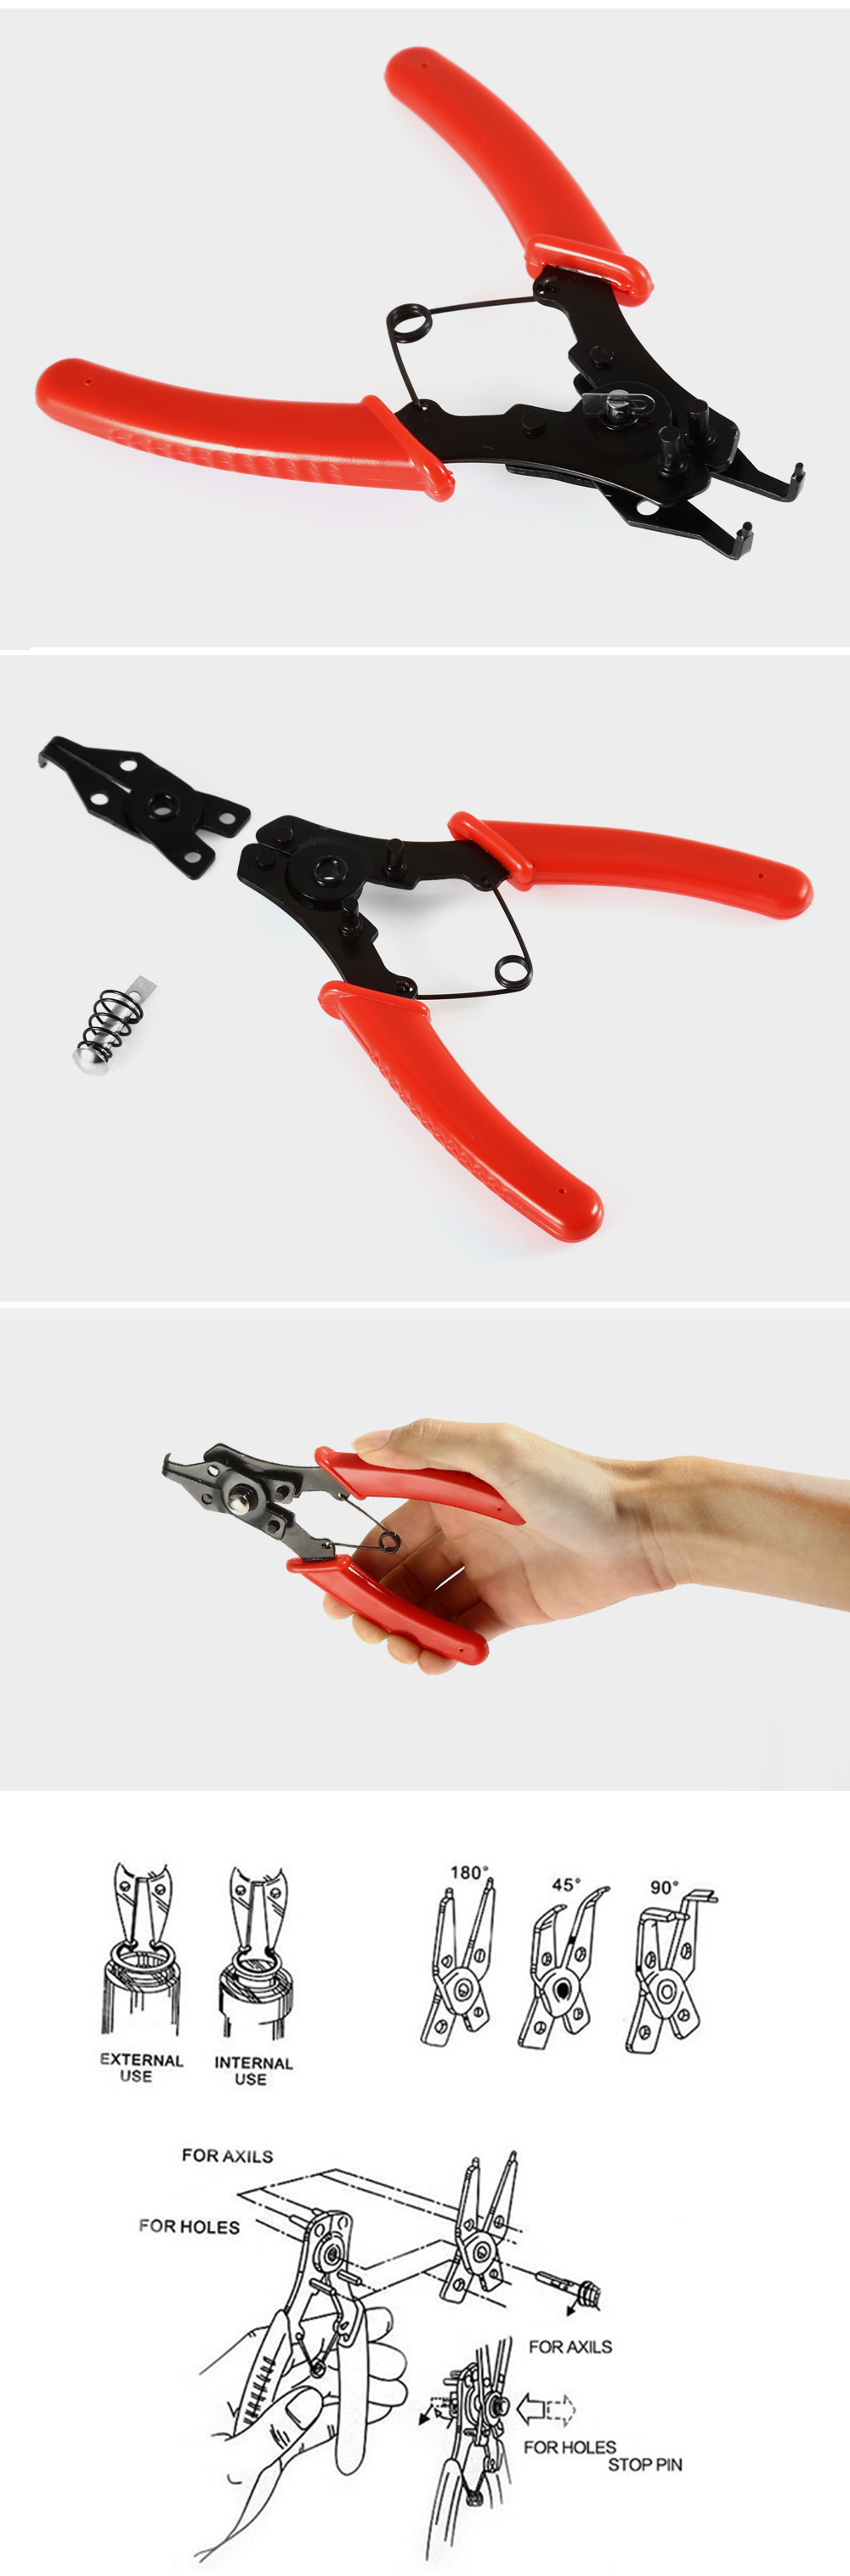 D - 4  4 in 1 Multifunctional Carbon Steel Snap Ring Pliers